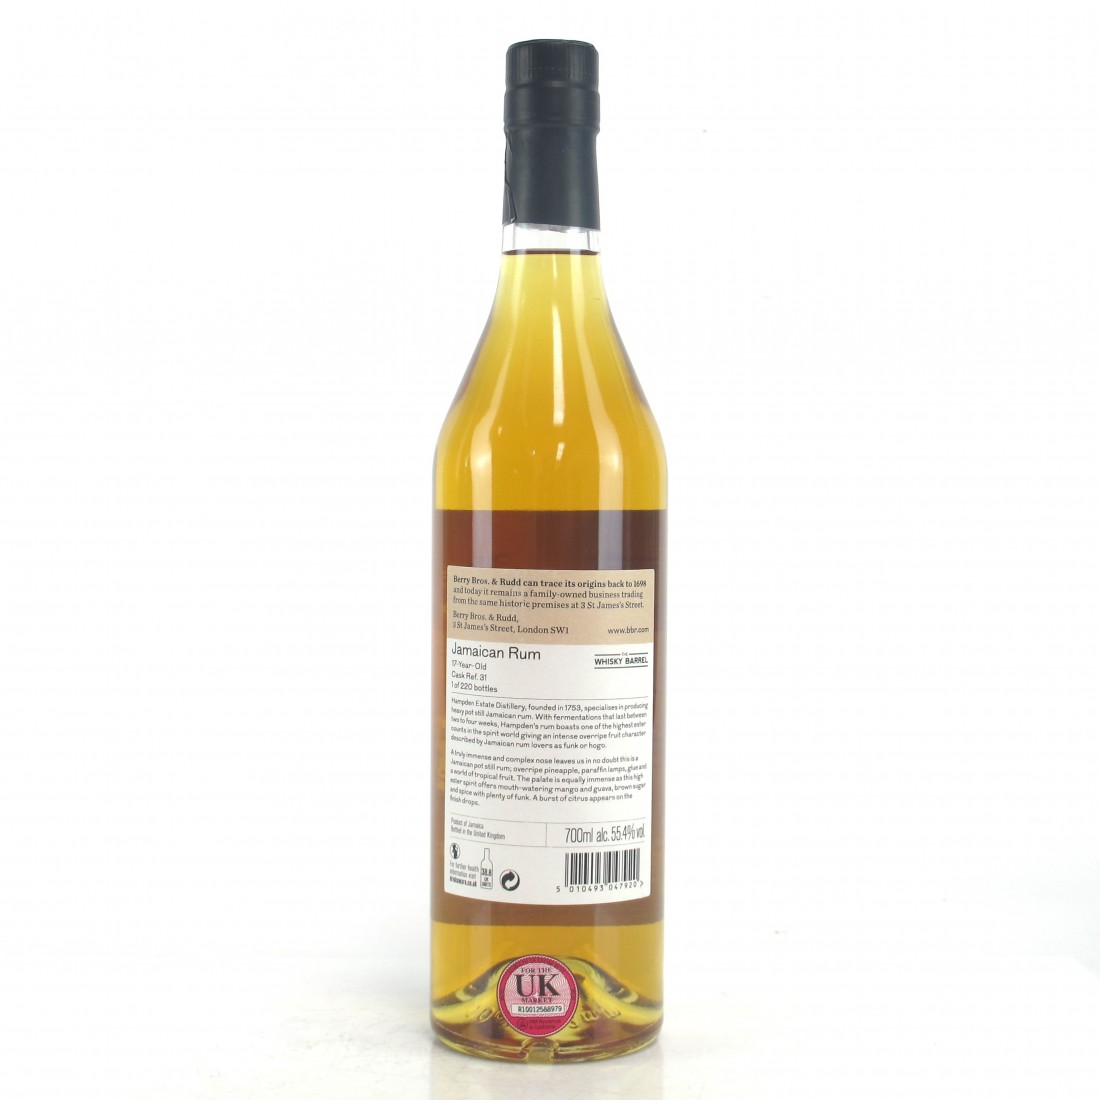 Hampden Berry Brothers 17 Year Old Jamaican Rum